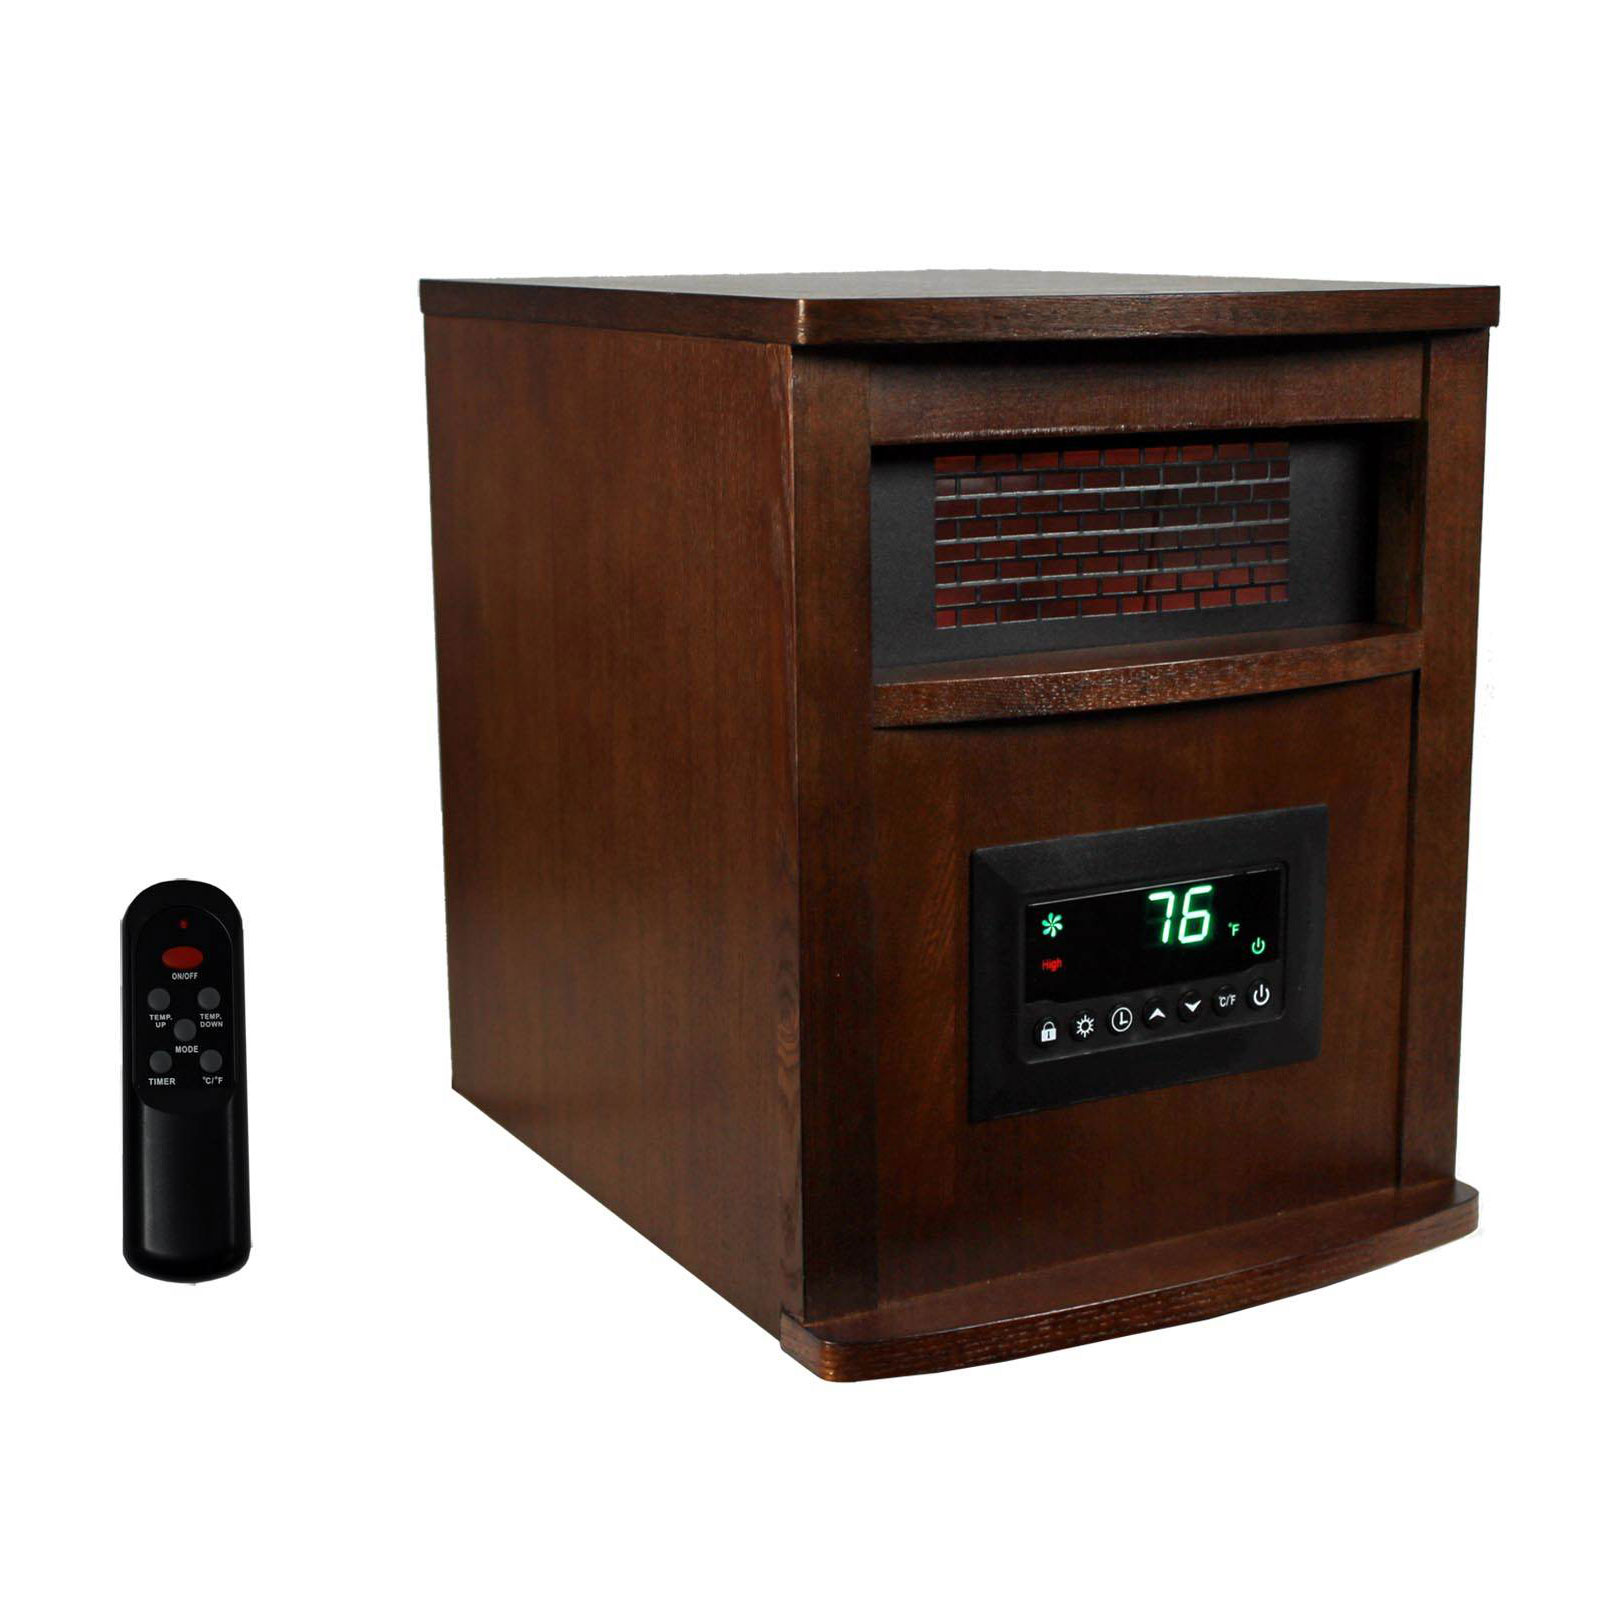 Wood Cabinet Low Noise Space Heater L Remote Control and Timer Electric Heater with Overheat/&Tip-Over Shut Off Protection 1500W Room Heater with 3 Heating Modes Brown for Bedroom and Office